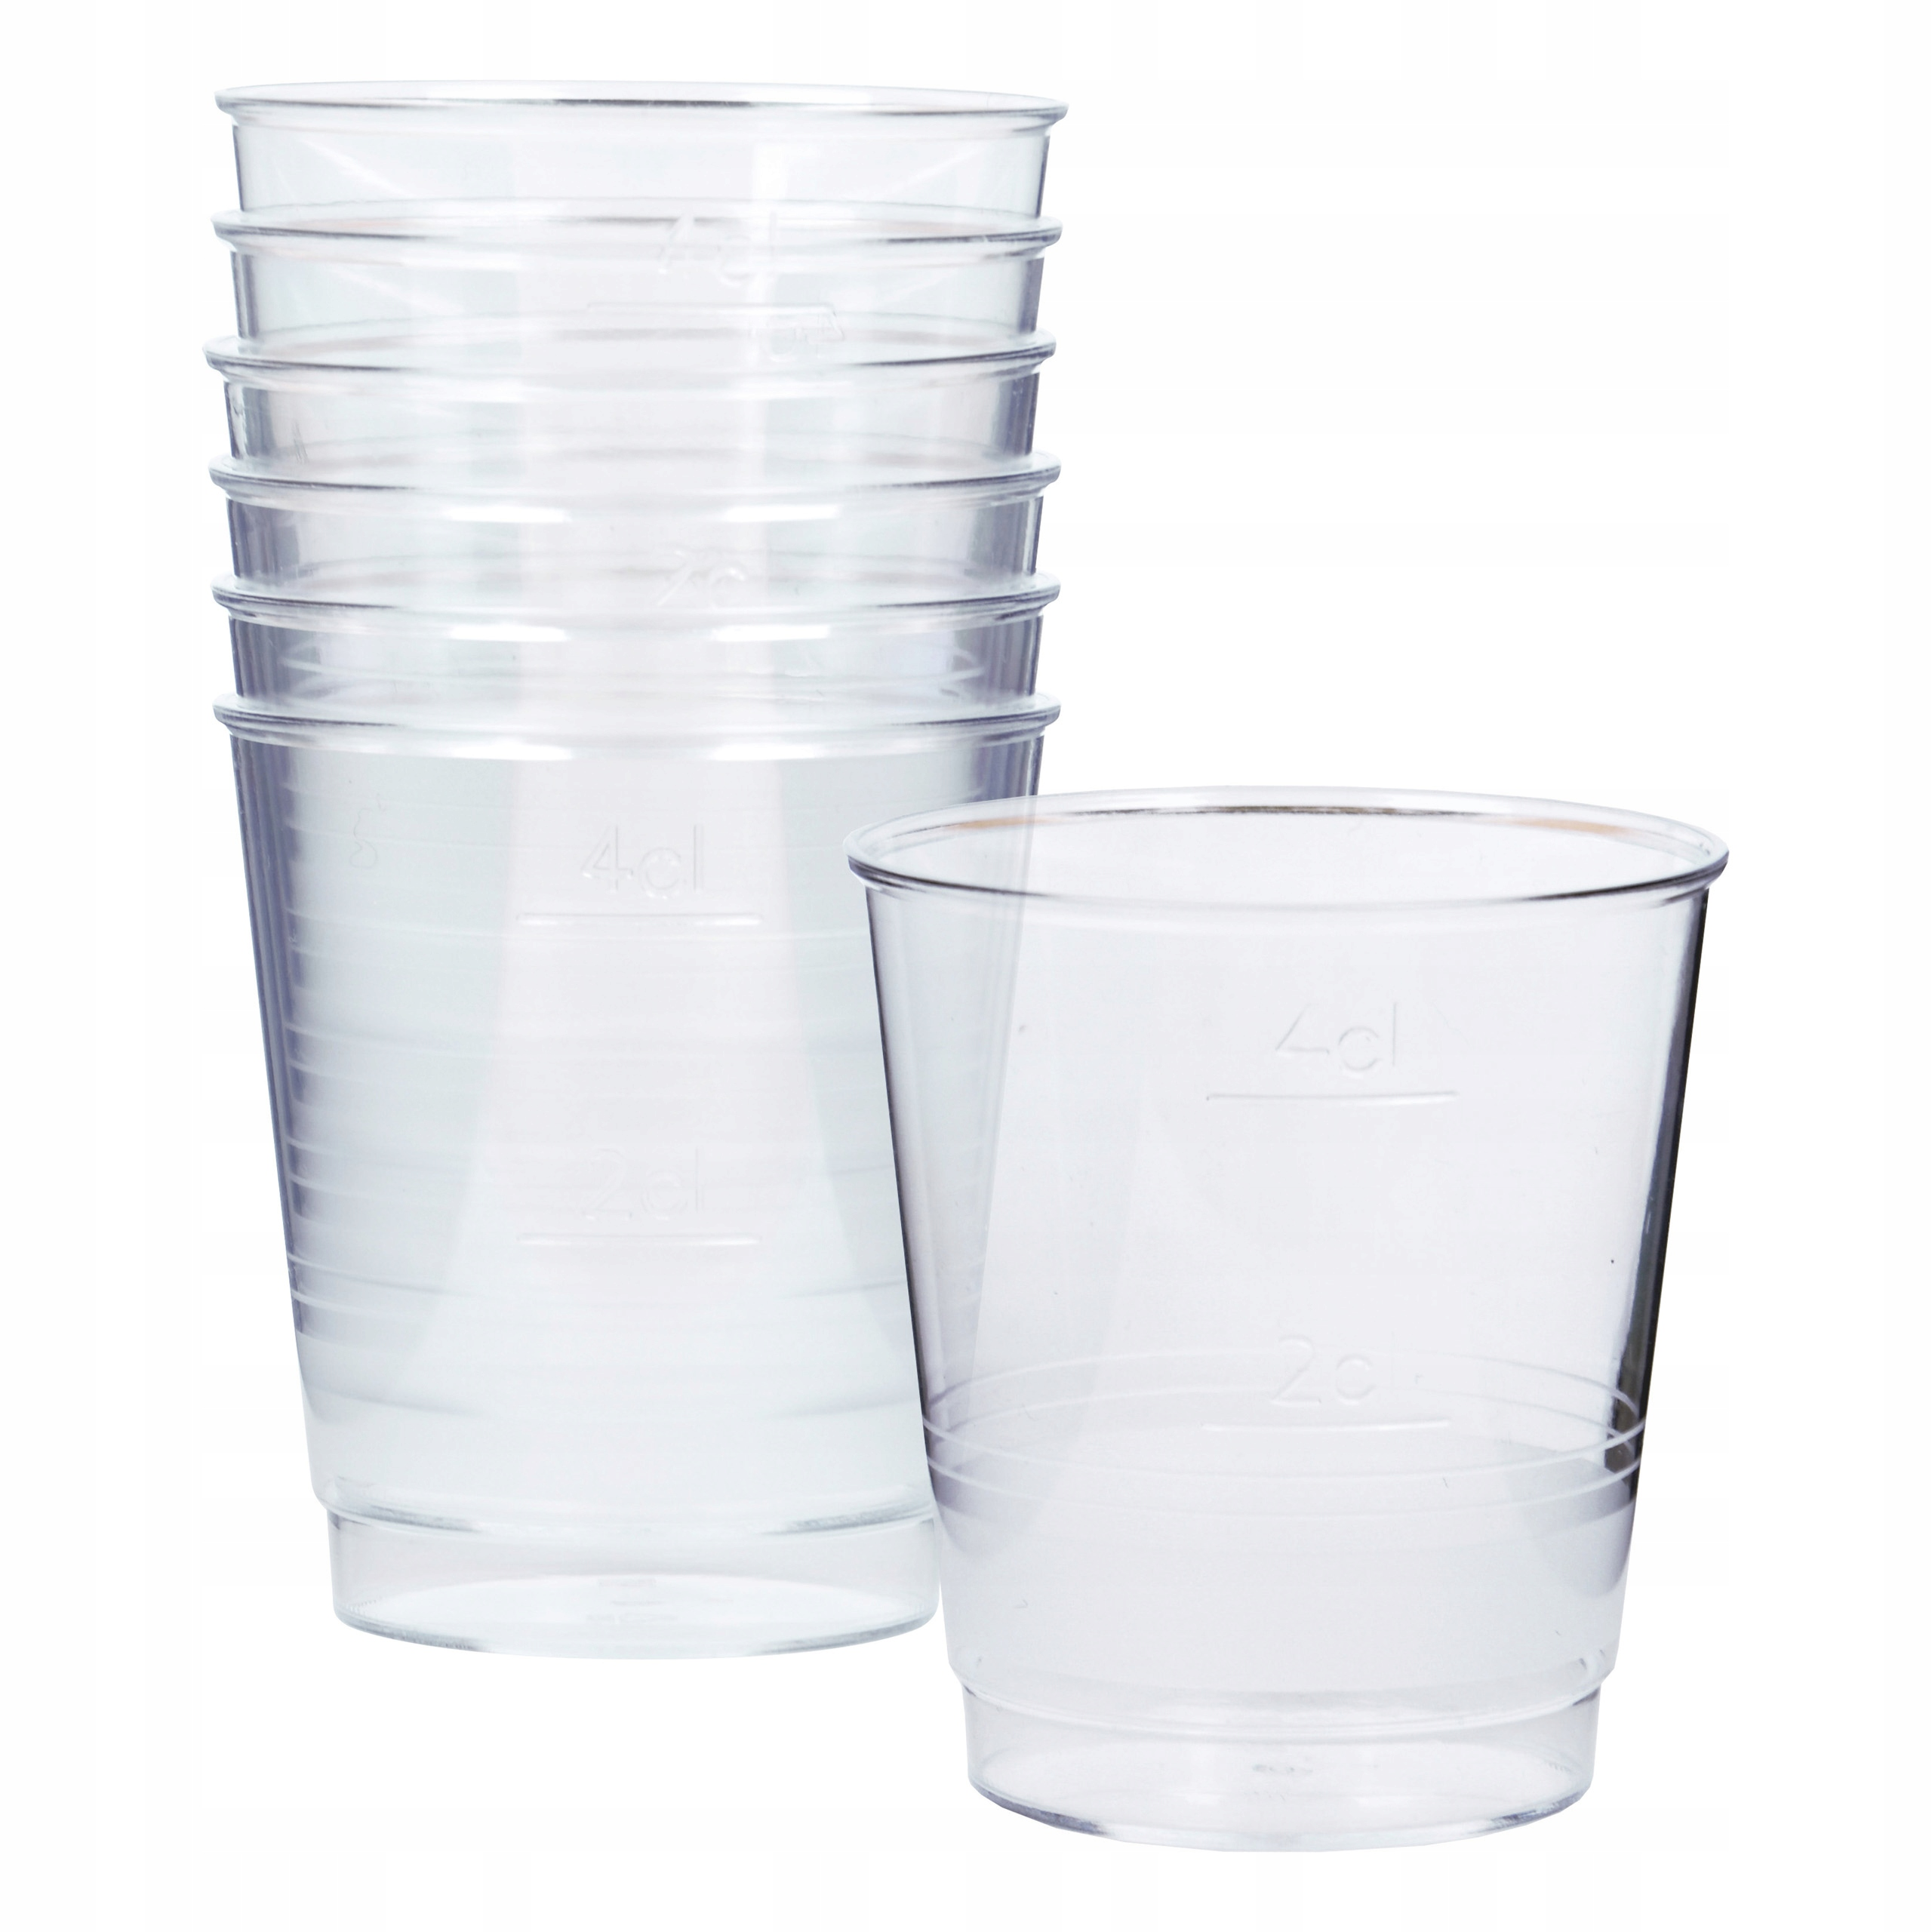 Item Plastic glasses for wine, 6 PCs